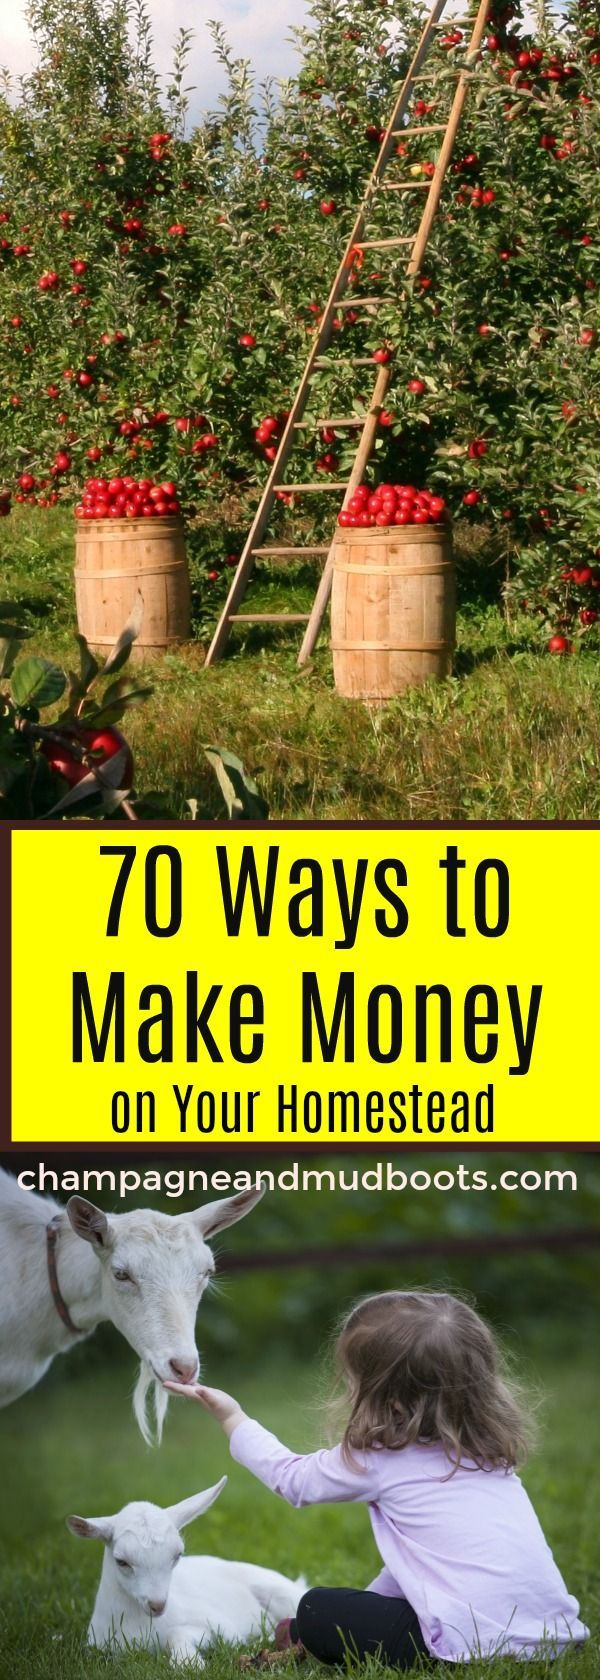 Ways to Make Money on a Homestead – Homesteading for beginners